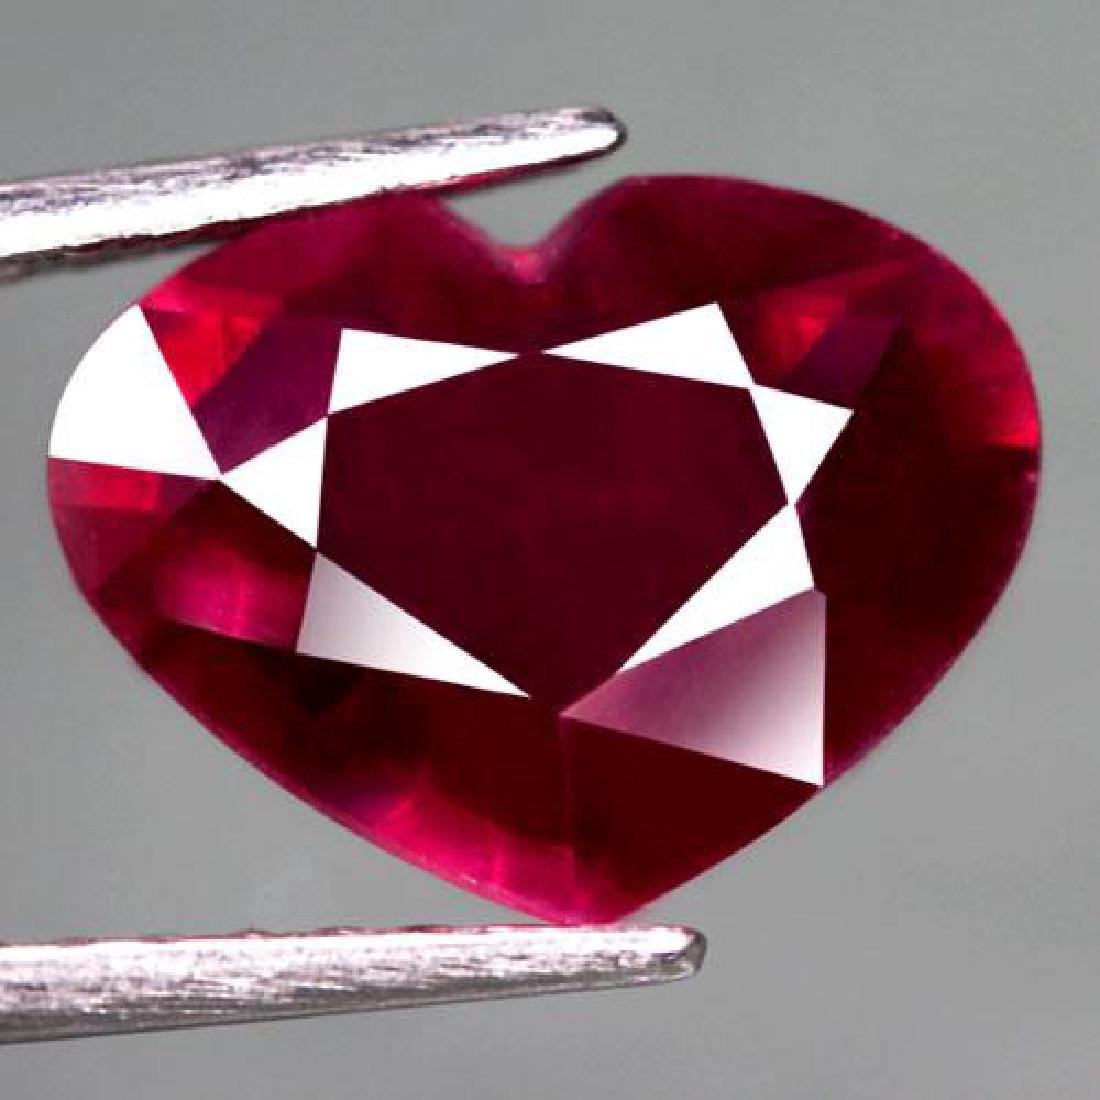 4.15 Carat Composite Loose Ruby